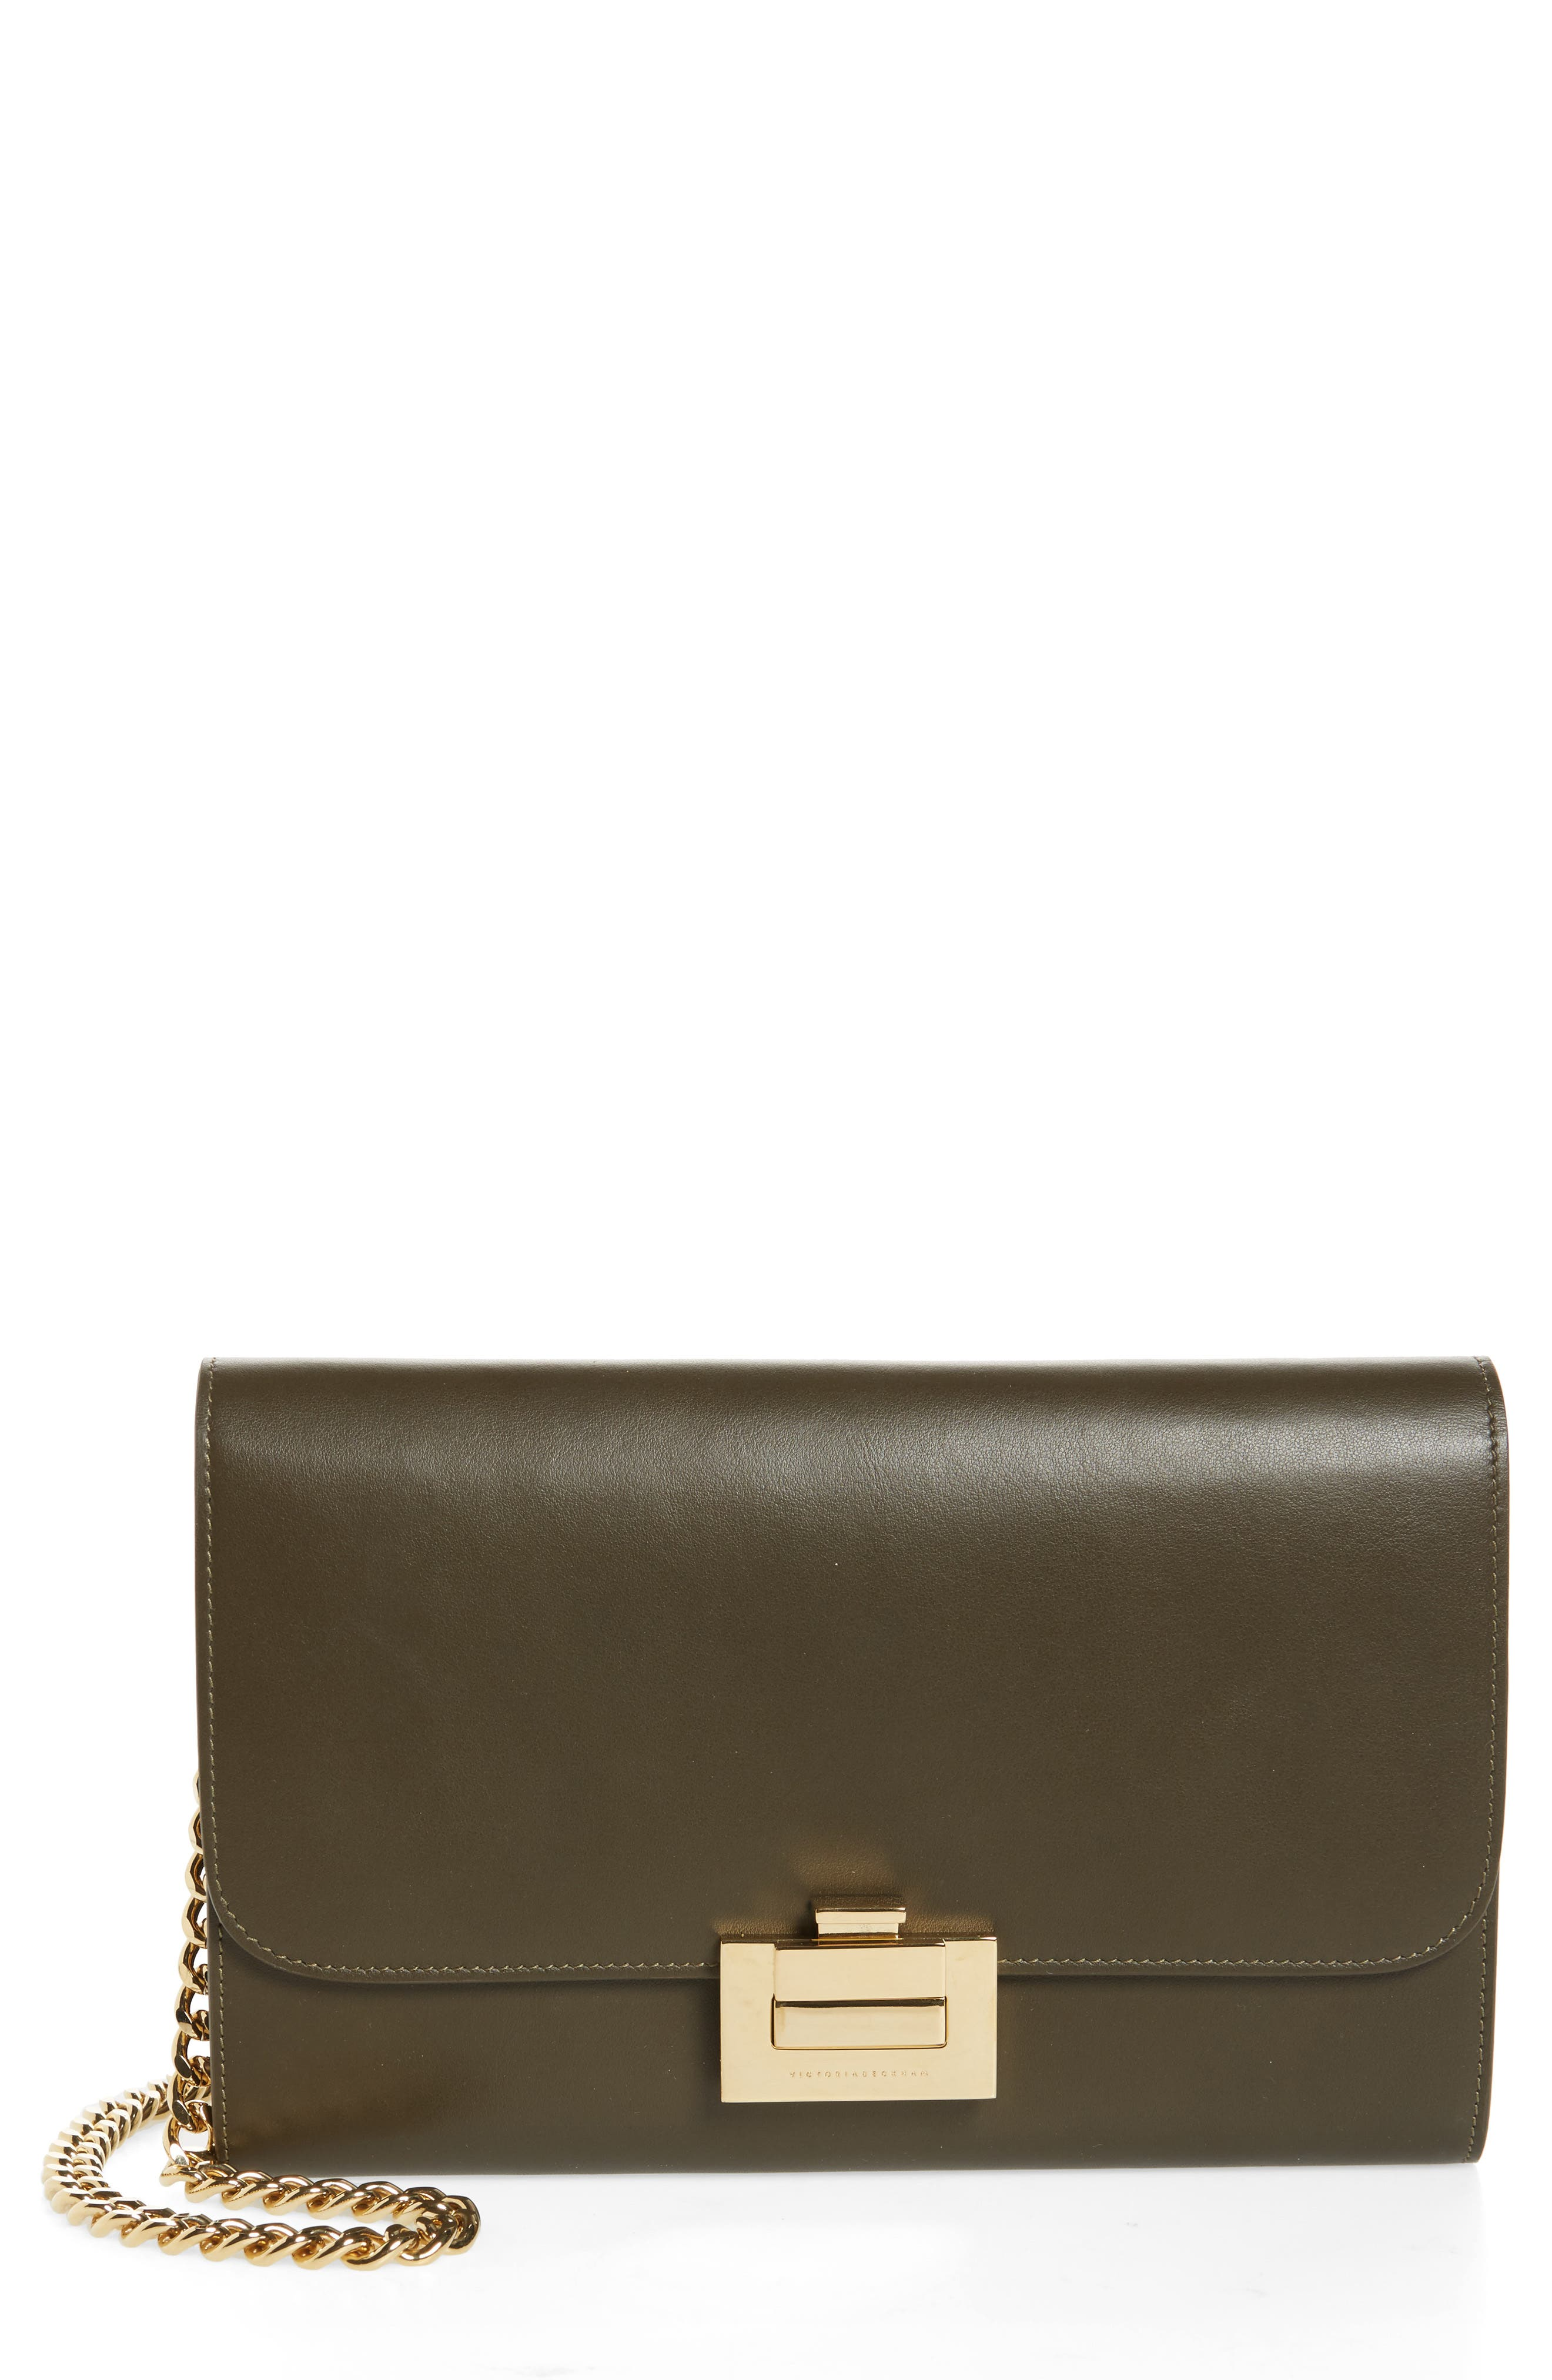 Victoria Beckham Leather Wallet on a Chain